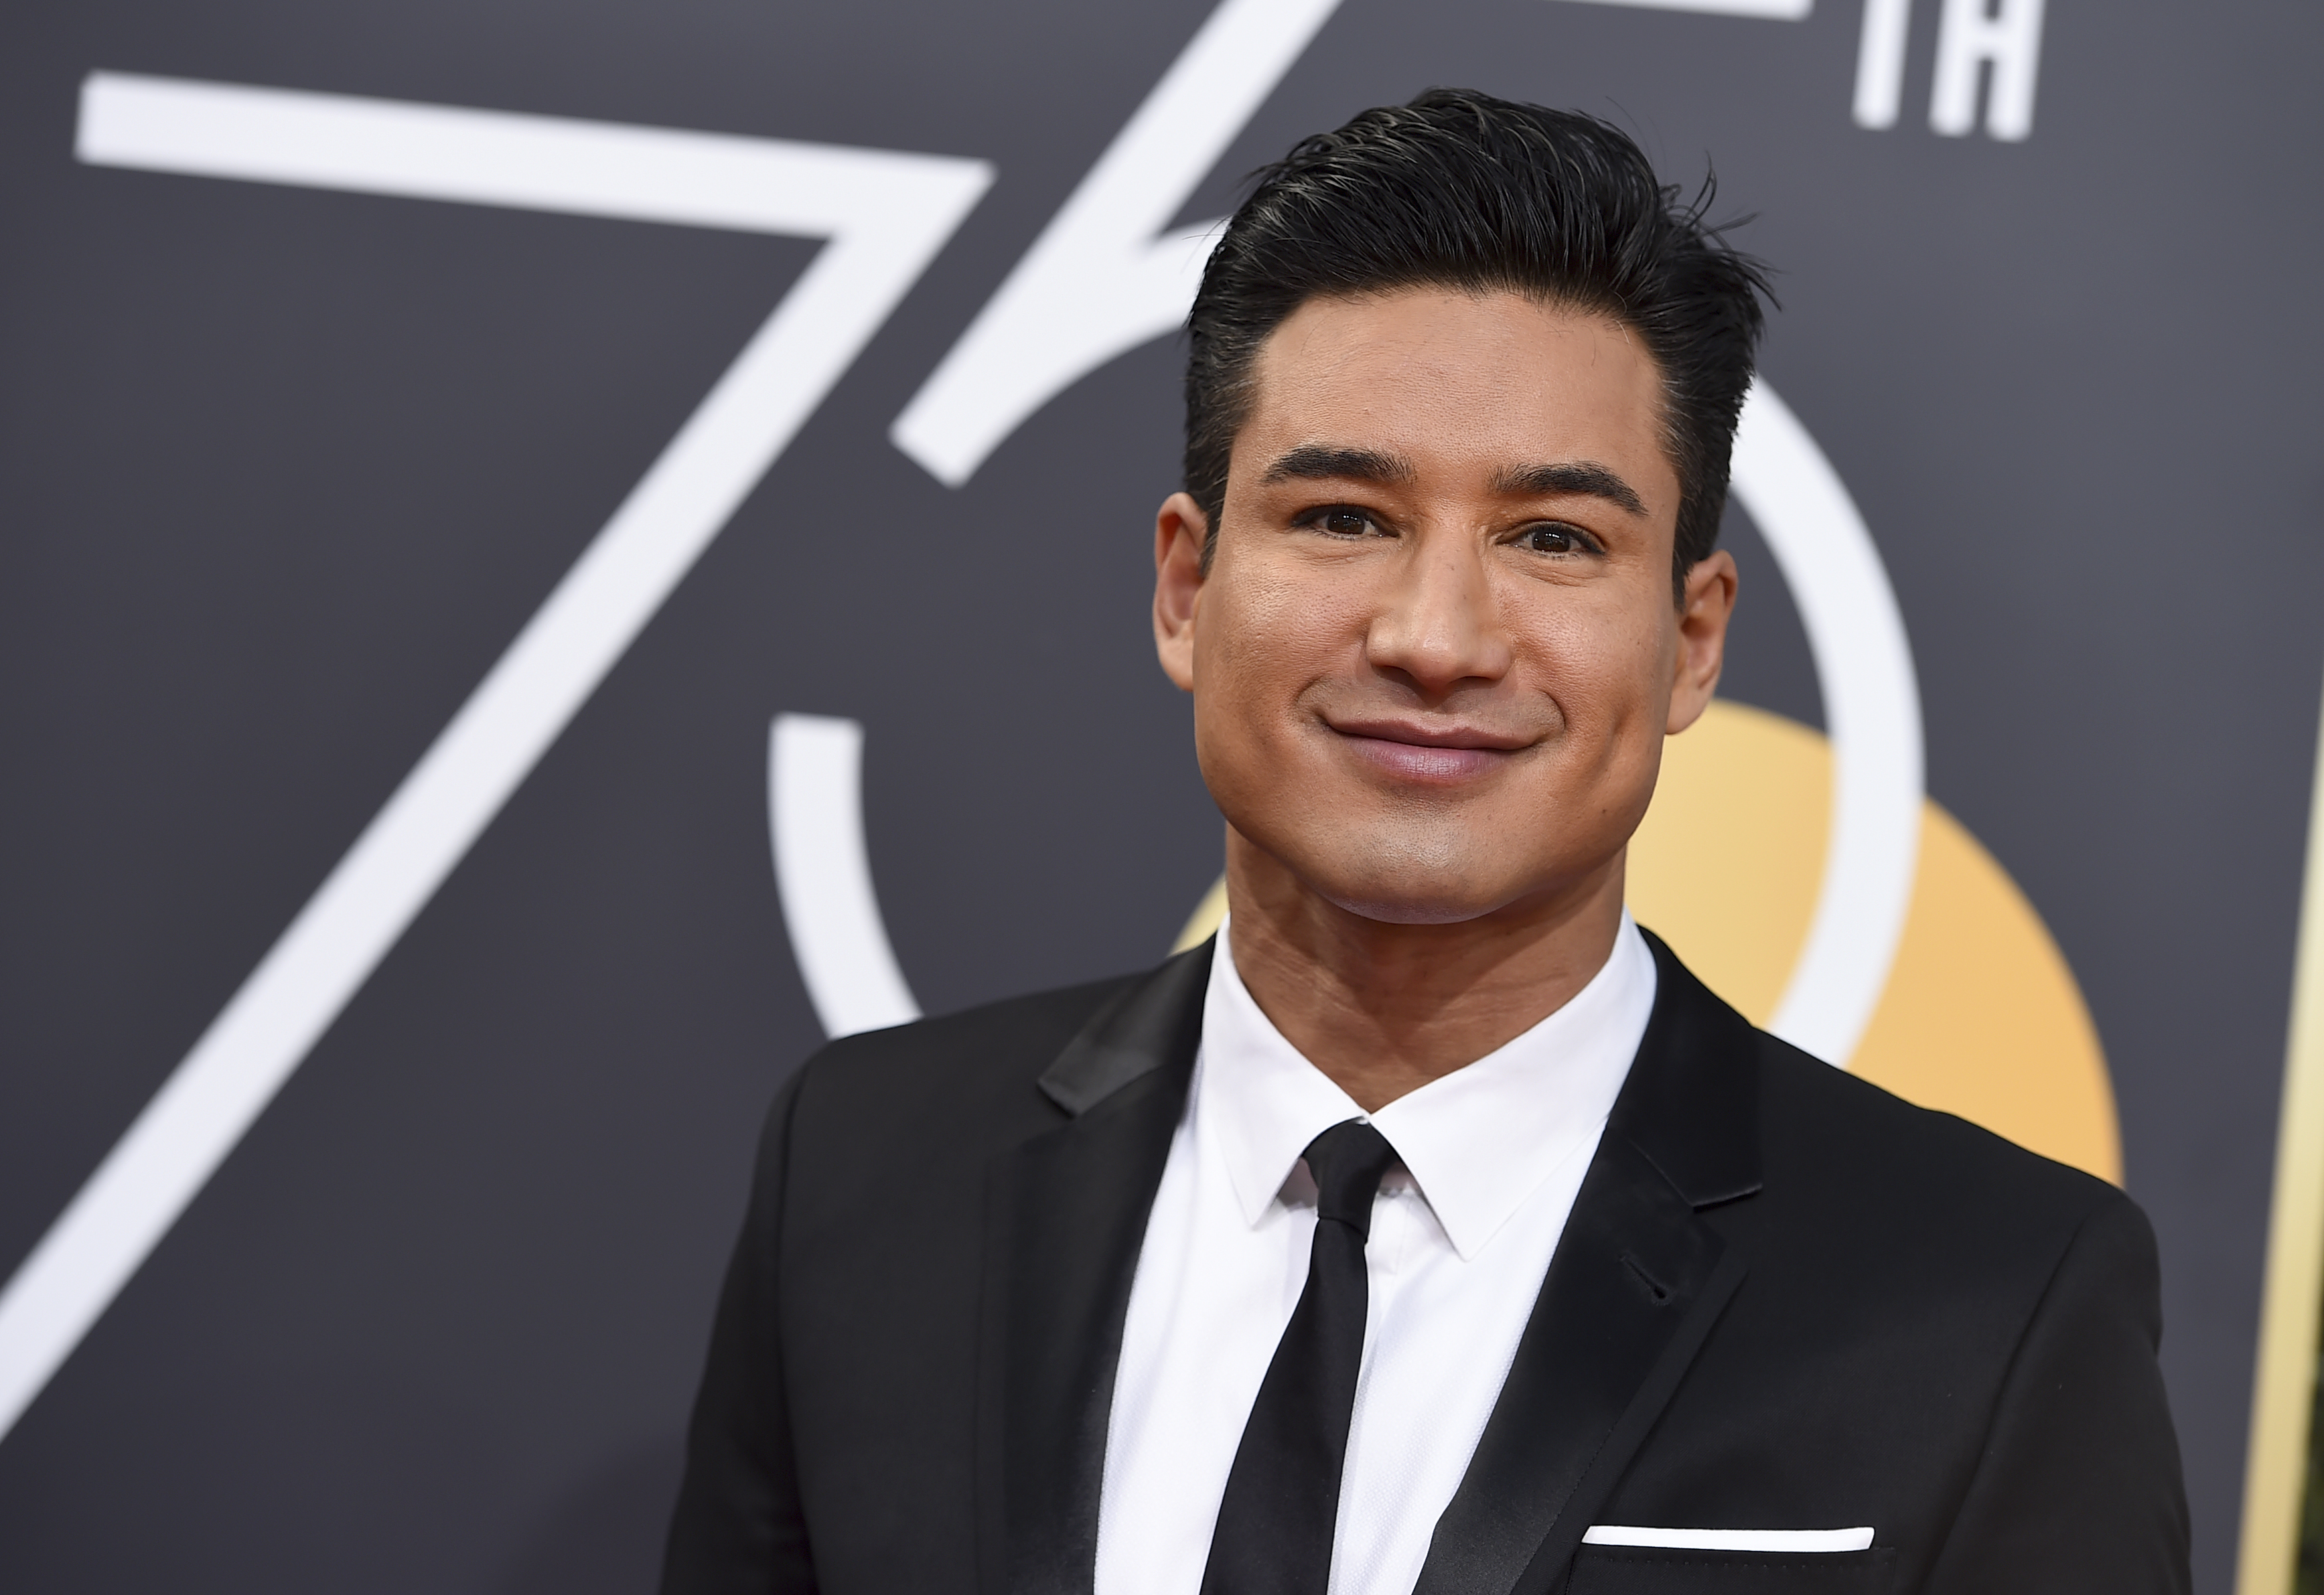 <div class='meta'><div class='origin-logo' data-origin='AP'></div><span class='caption-text' data-credit='Jordan Strauss/Invision/AP'>Mario Lopez arrives at the 75th annual Golden Globe Awards at the Beverly Hilton Hotel on Sunday, Jan. 7, 2018, in Beverly Hills, Calif.</span></div>